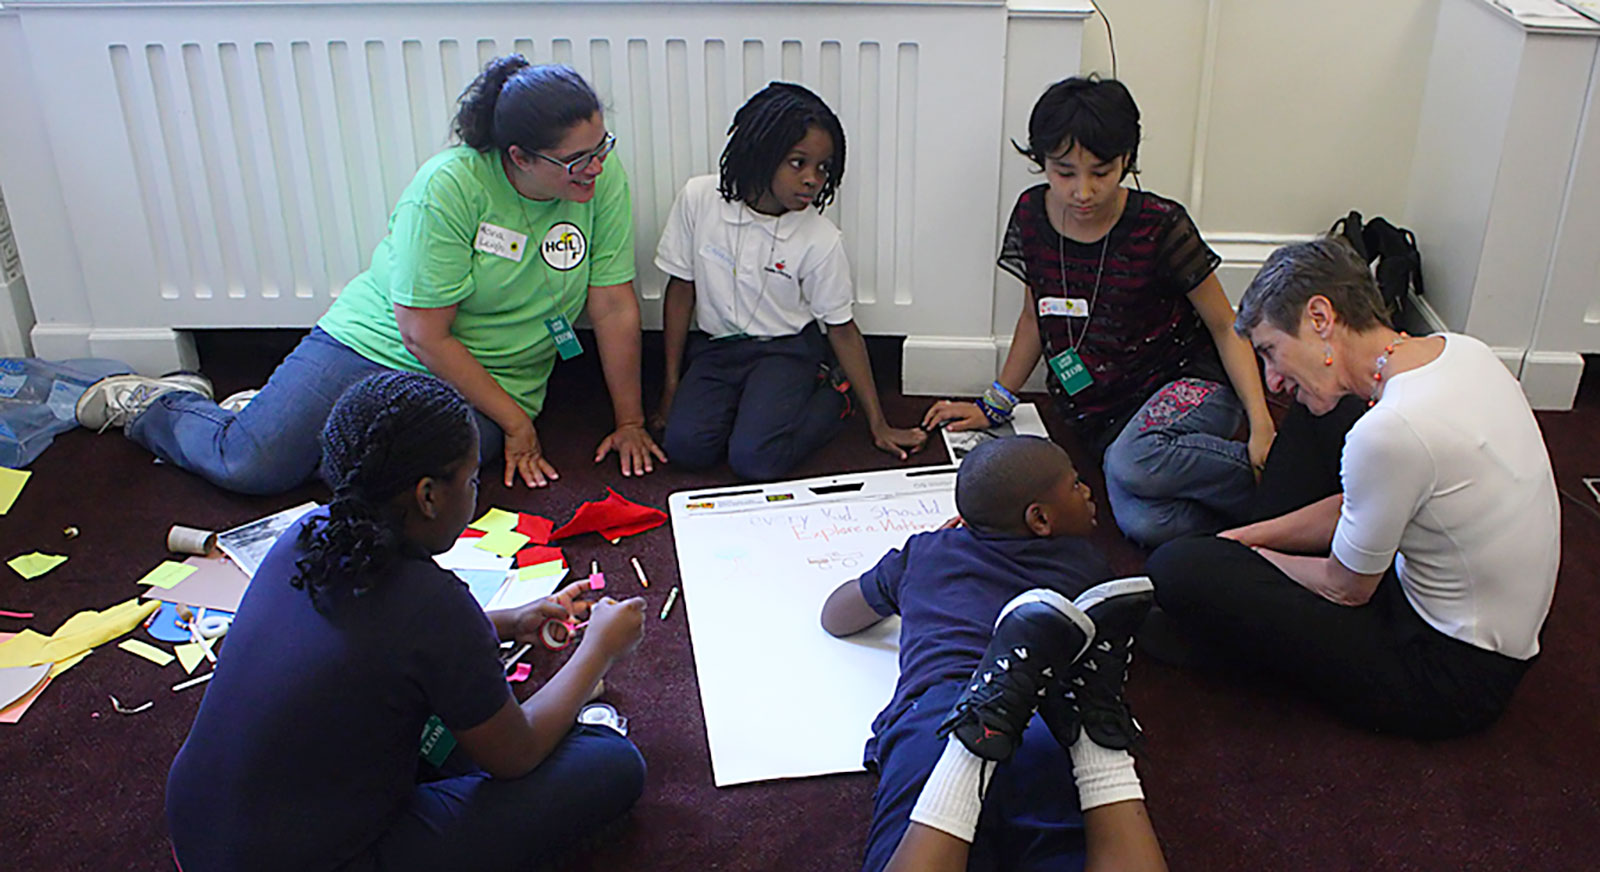 Children and adults sit around a large piece of paper while co-designing the Every Kid in a Park website.